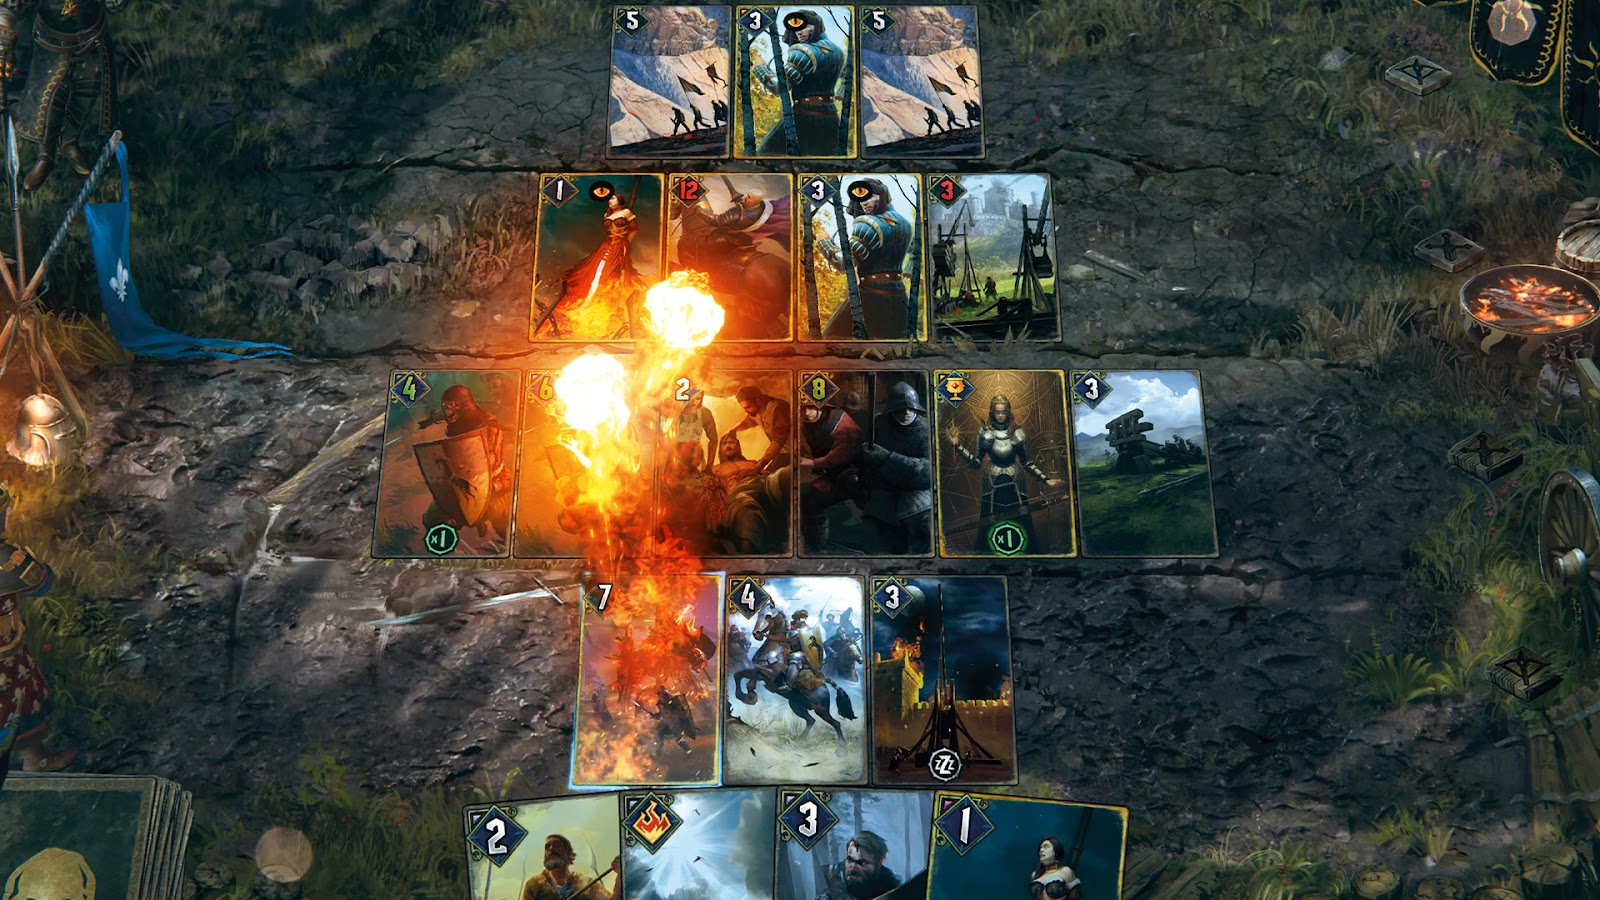 [Review] Gwent : The Witcher Card Game เกมการ์ดจากซีรีส์ The Witcher 04